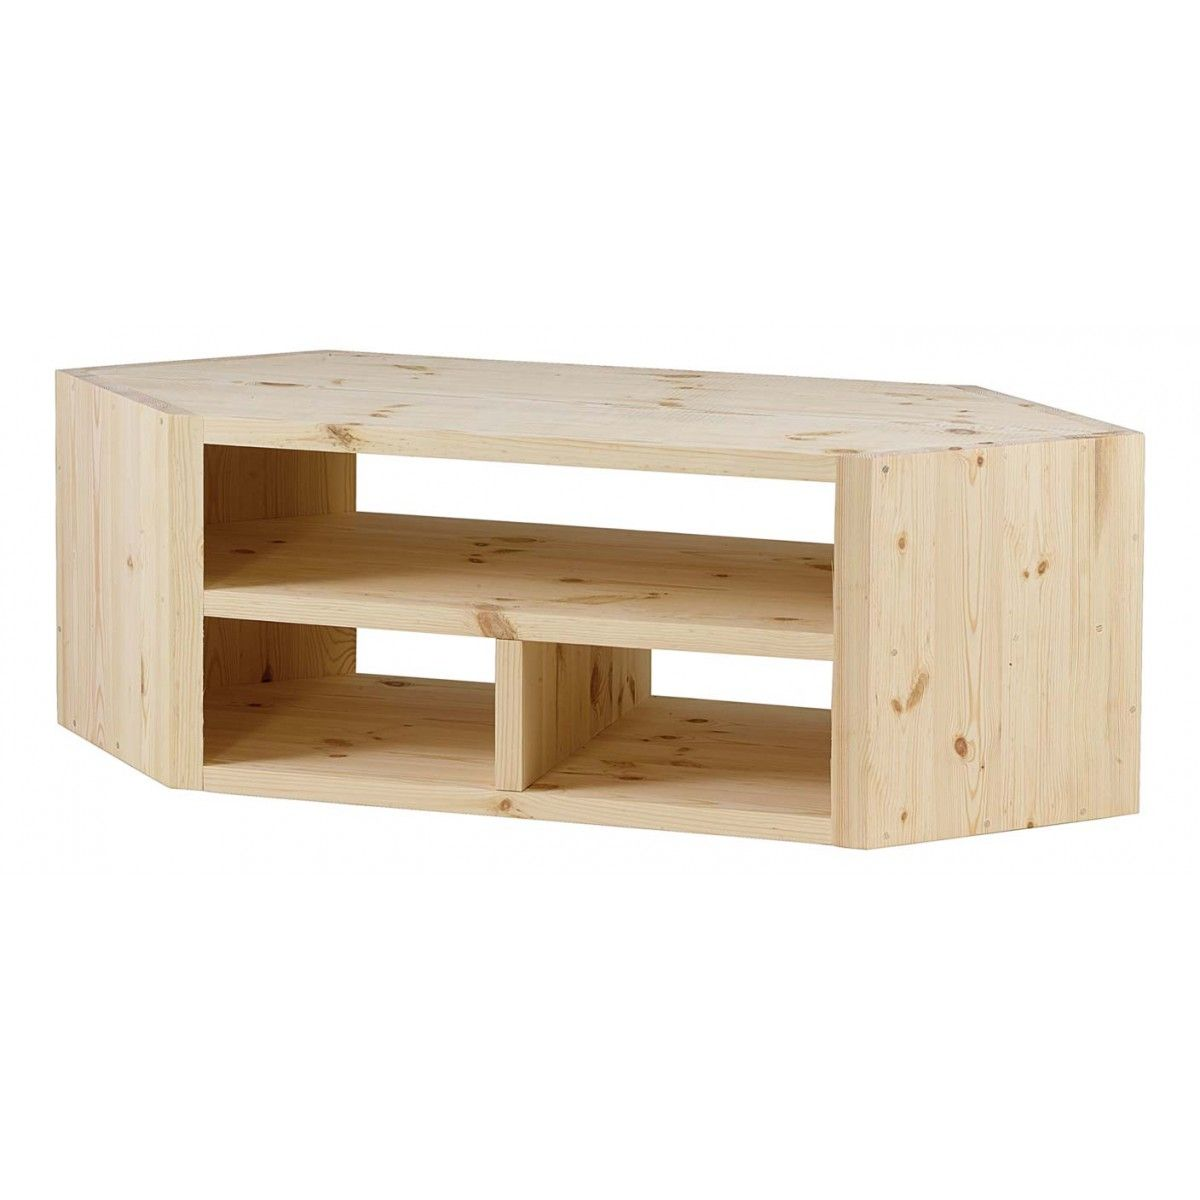 Meuble Tv D Angle Design Pin Massif Brut 3 Niches Matendance  # Table Televiseur Ecran Plat En Bois